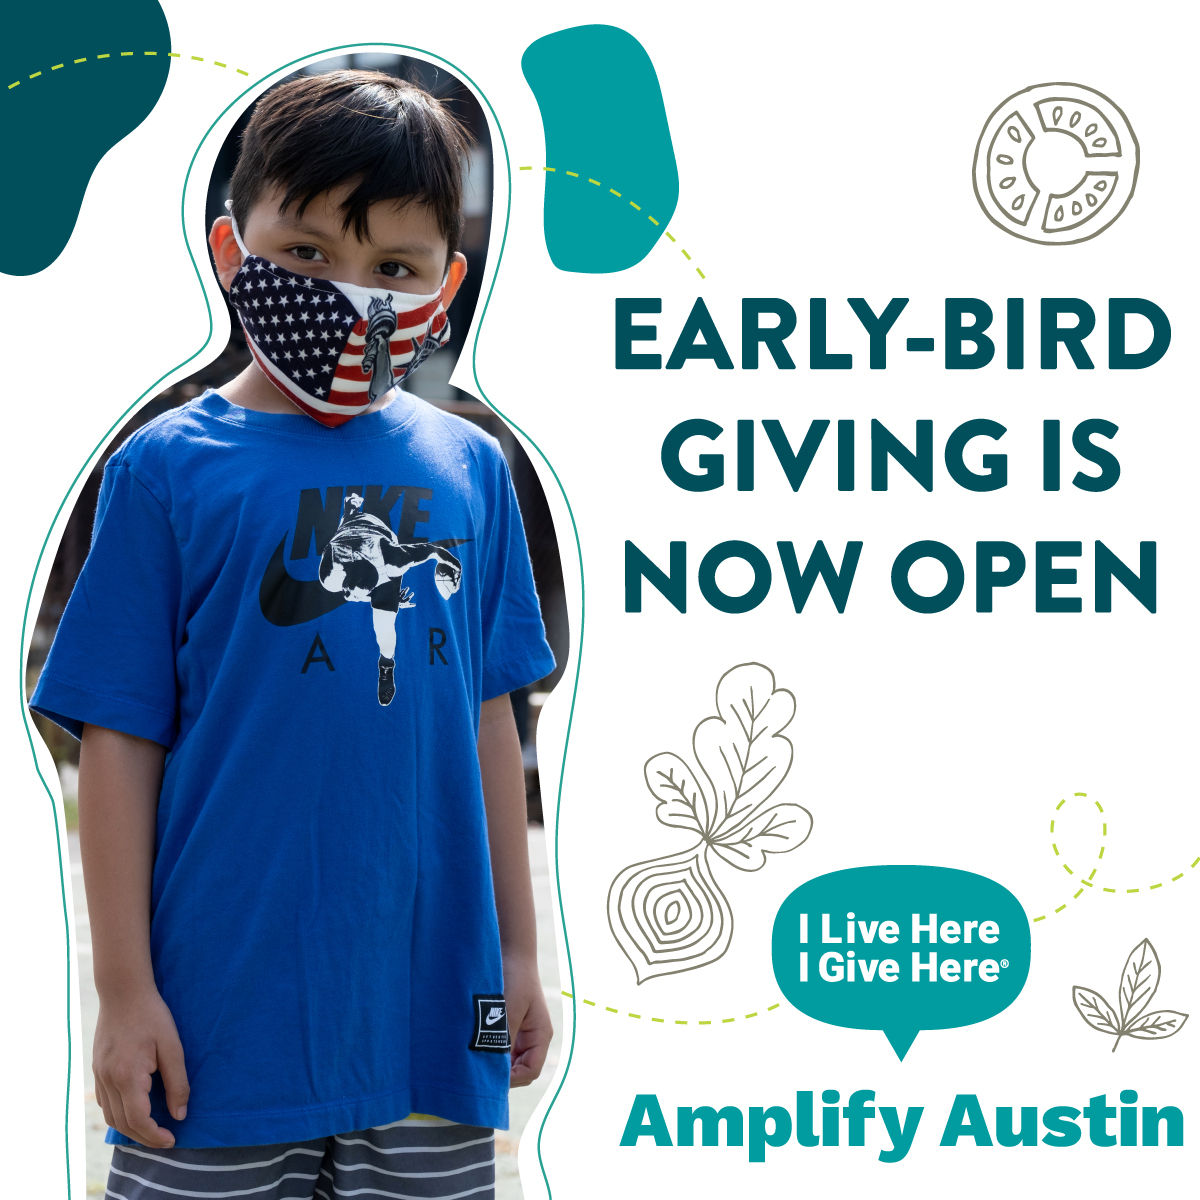 Last year the Food Bank served a record number of Central Texans, and the struggle isn't over yet. We need your help to meet the rising need. When you make your @ILH_IGH Amplify Austin gift early, your donation will be MATCHED up to $10K. $1=$2! Donate at